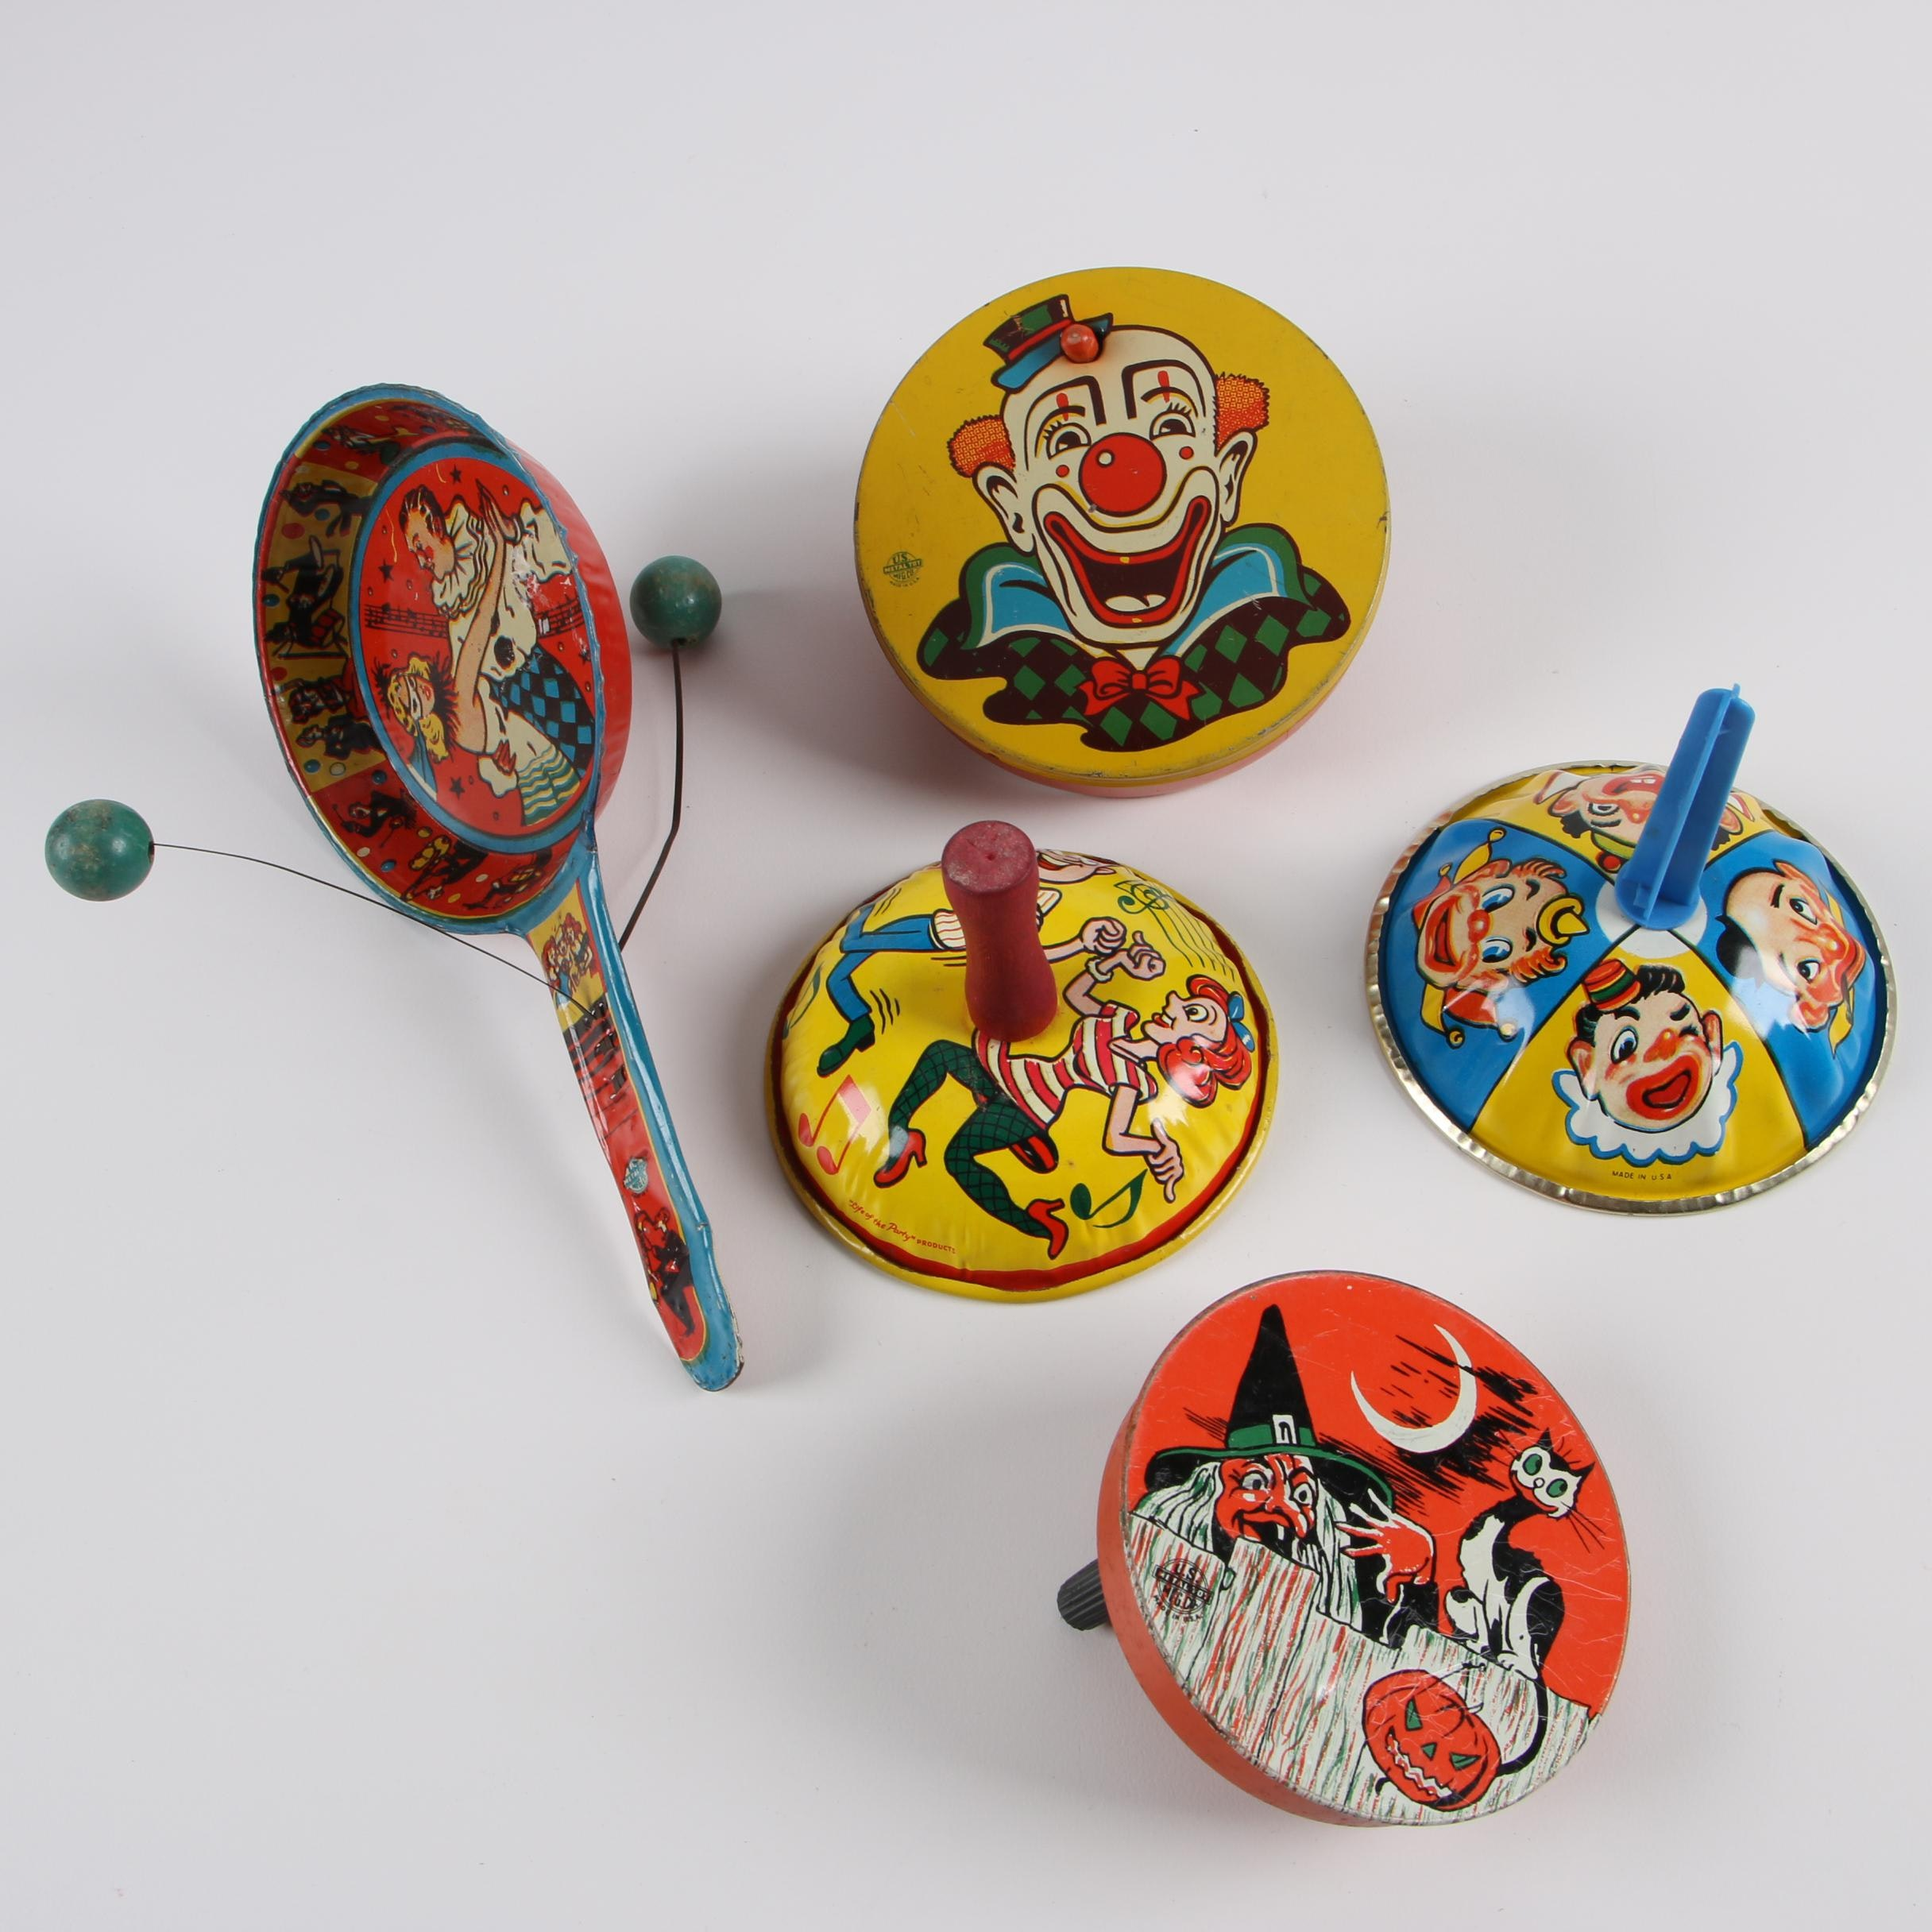 Mid Century Tin Litho Noisemakers including Halloween and Dance Themes